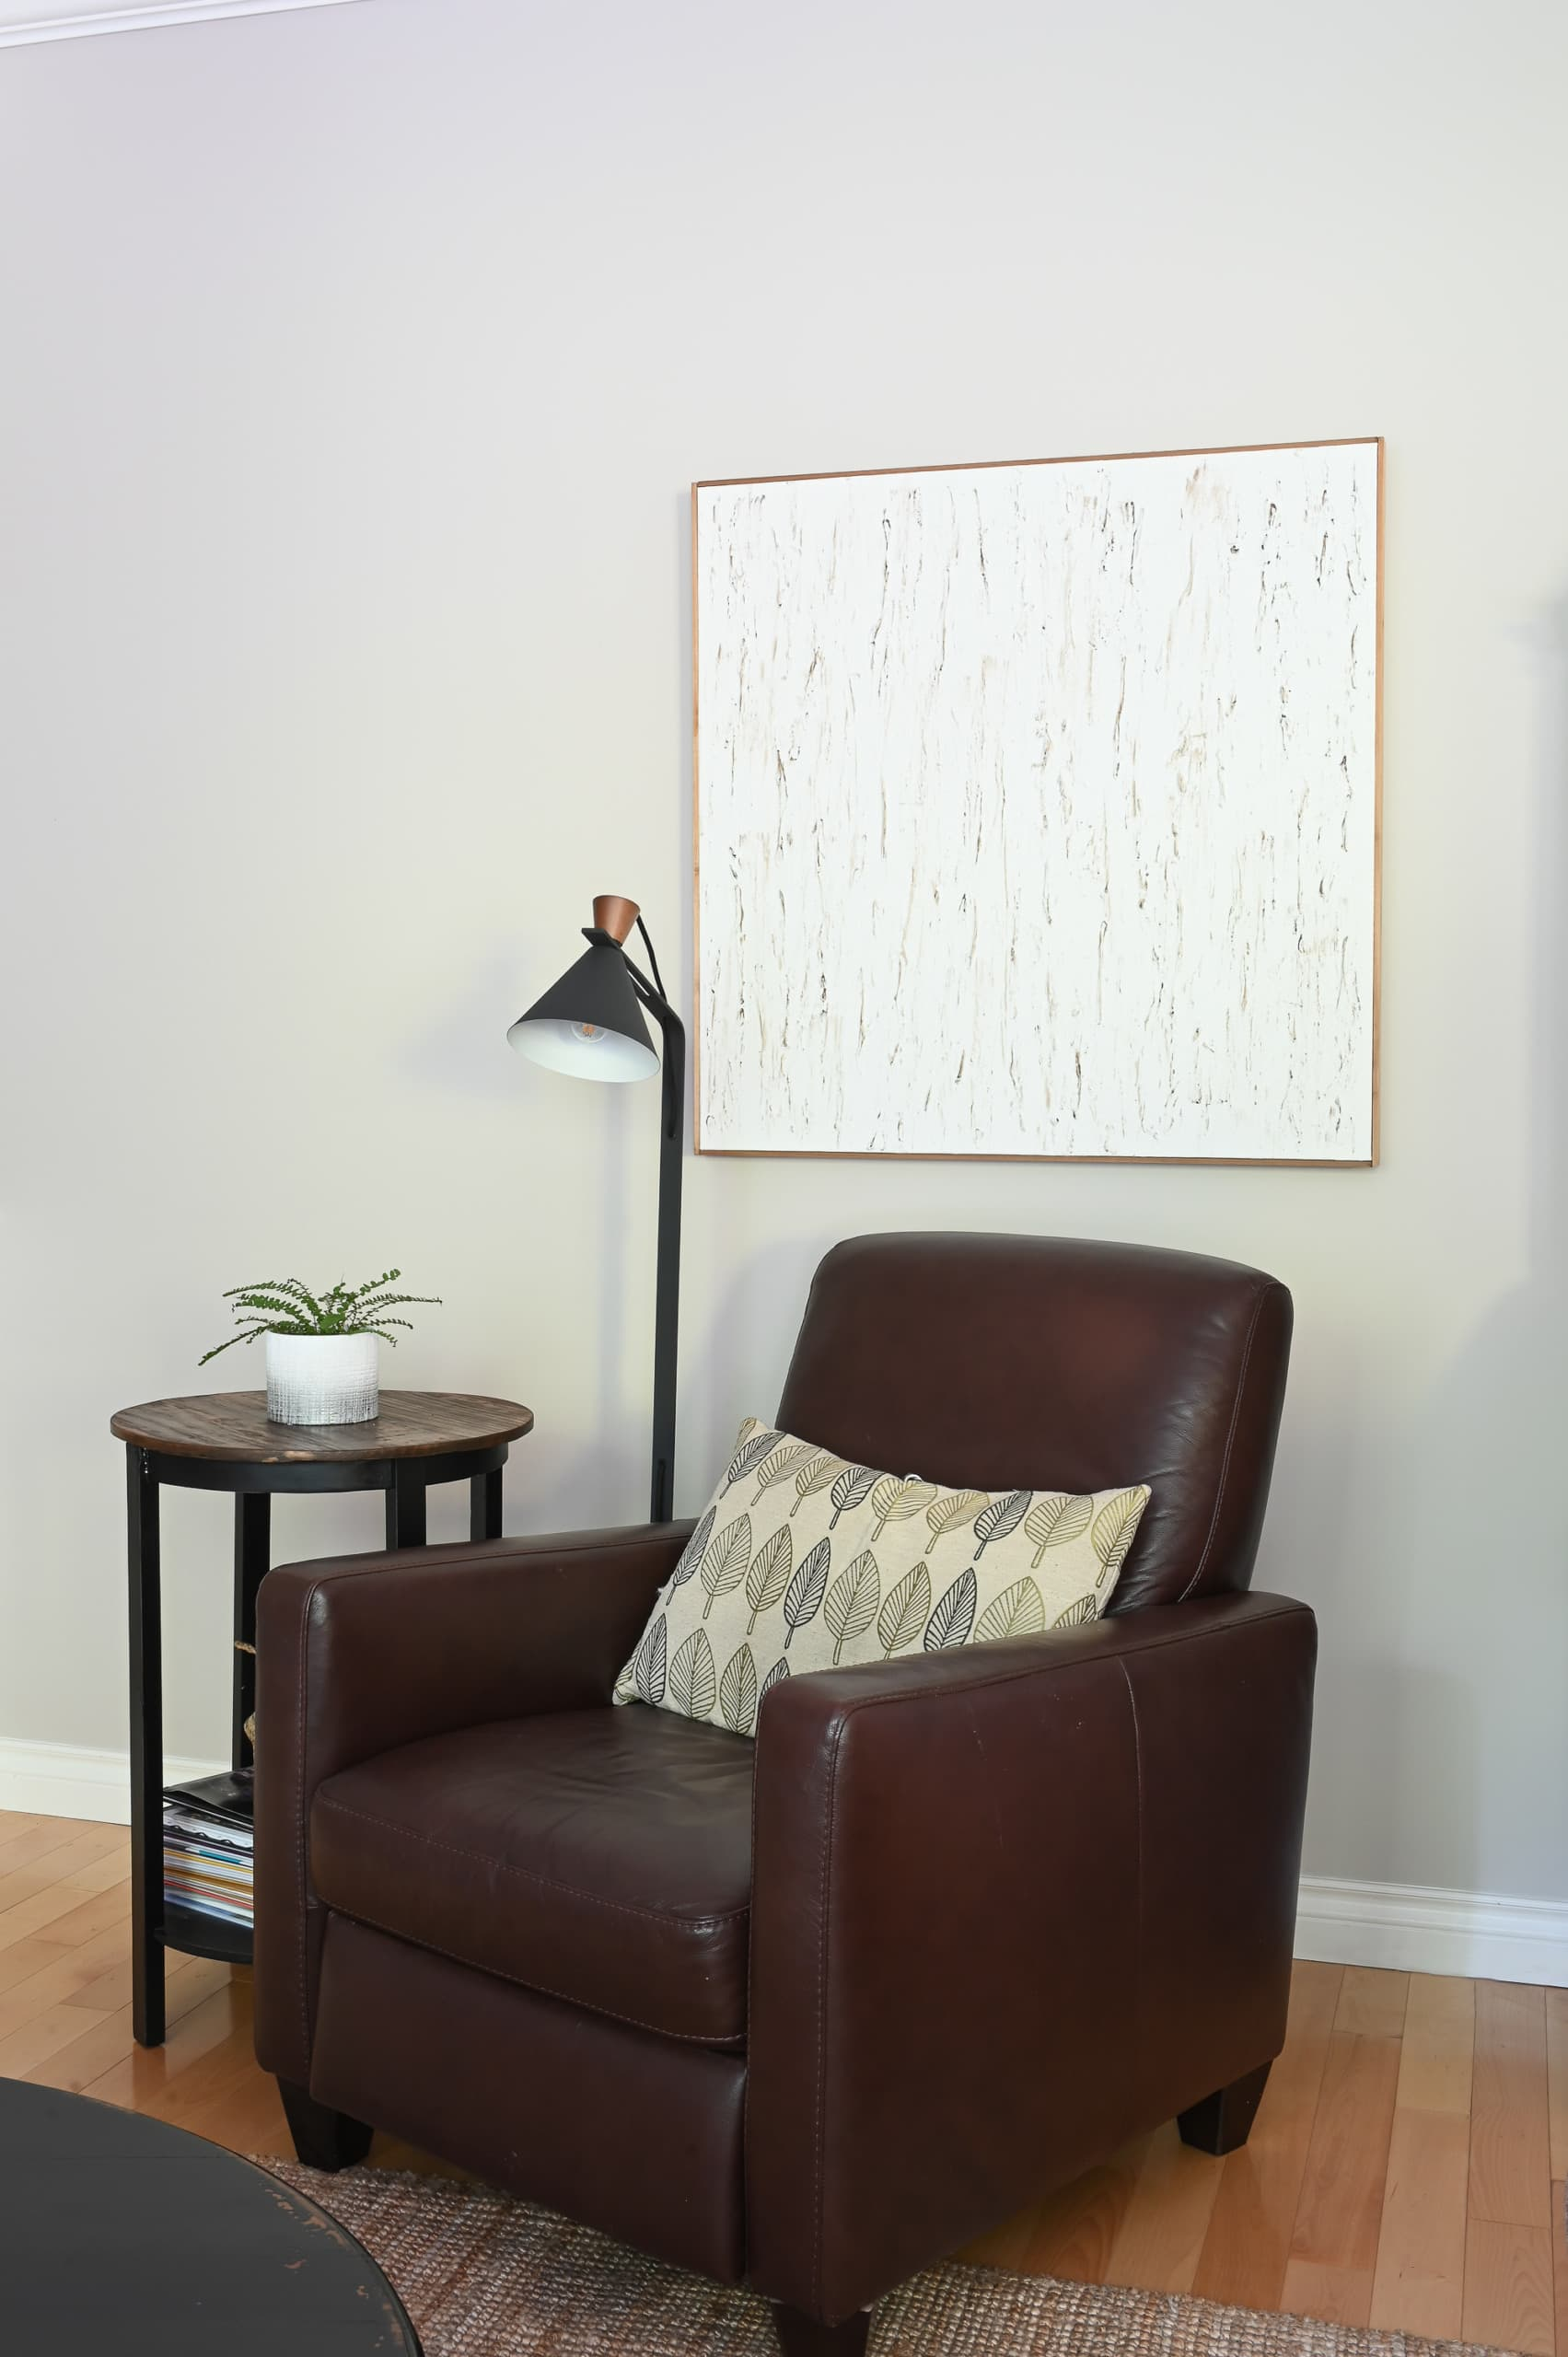 Cozy chair in a family room